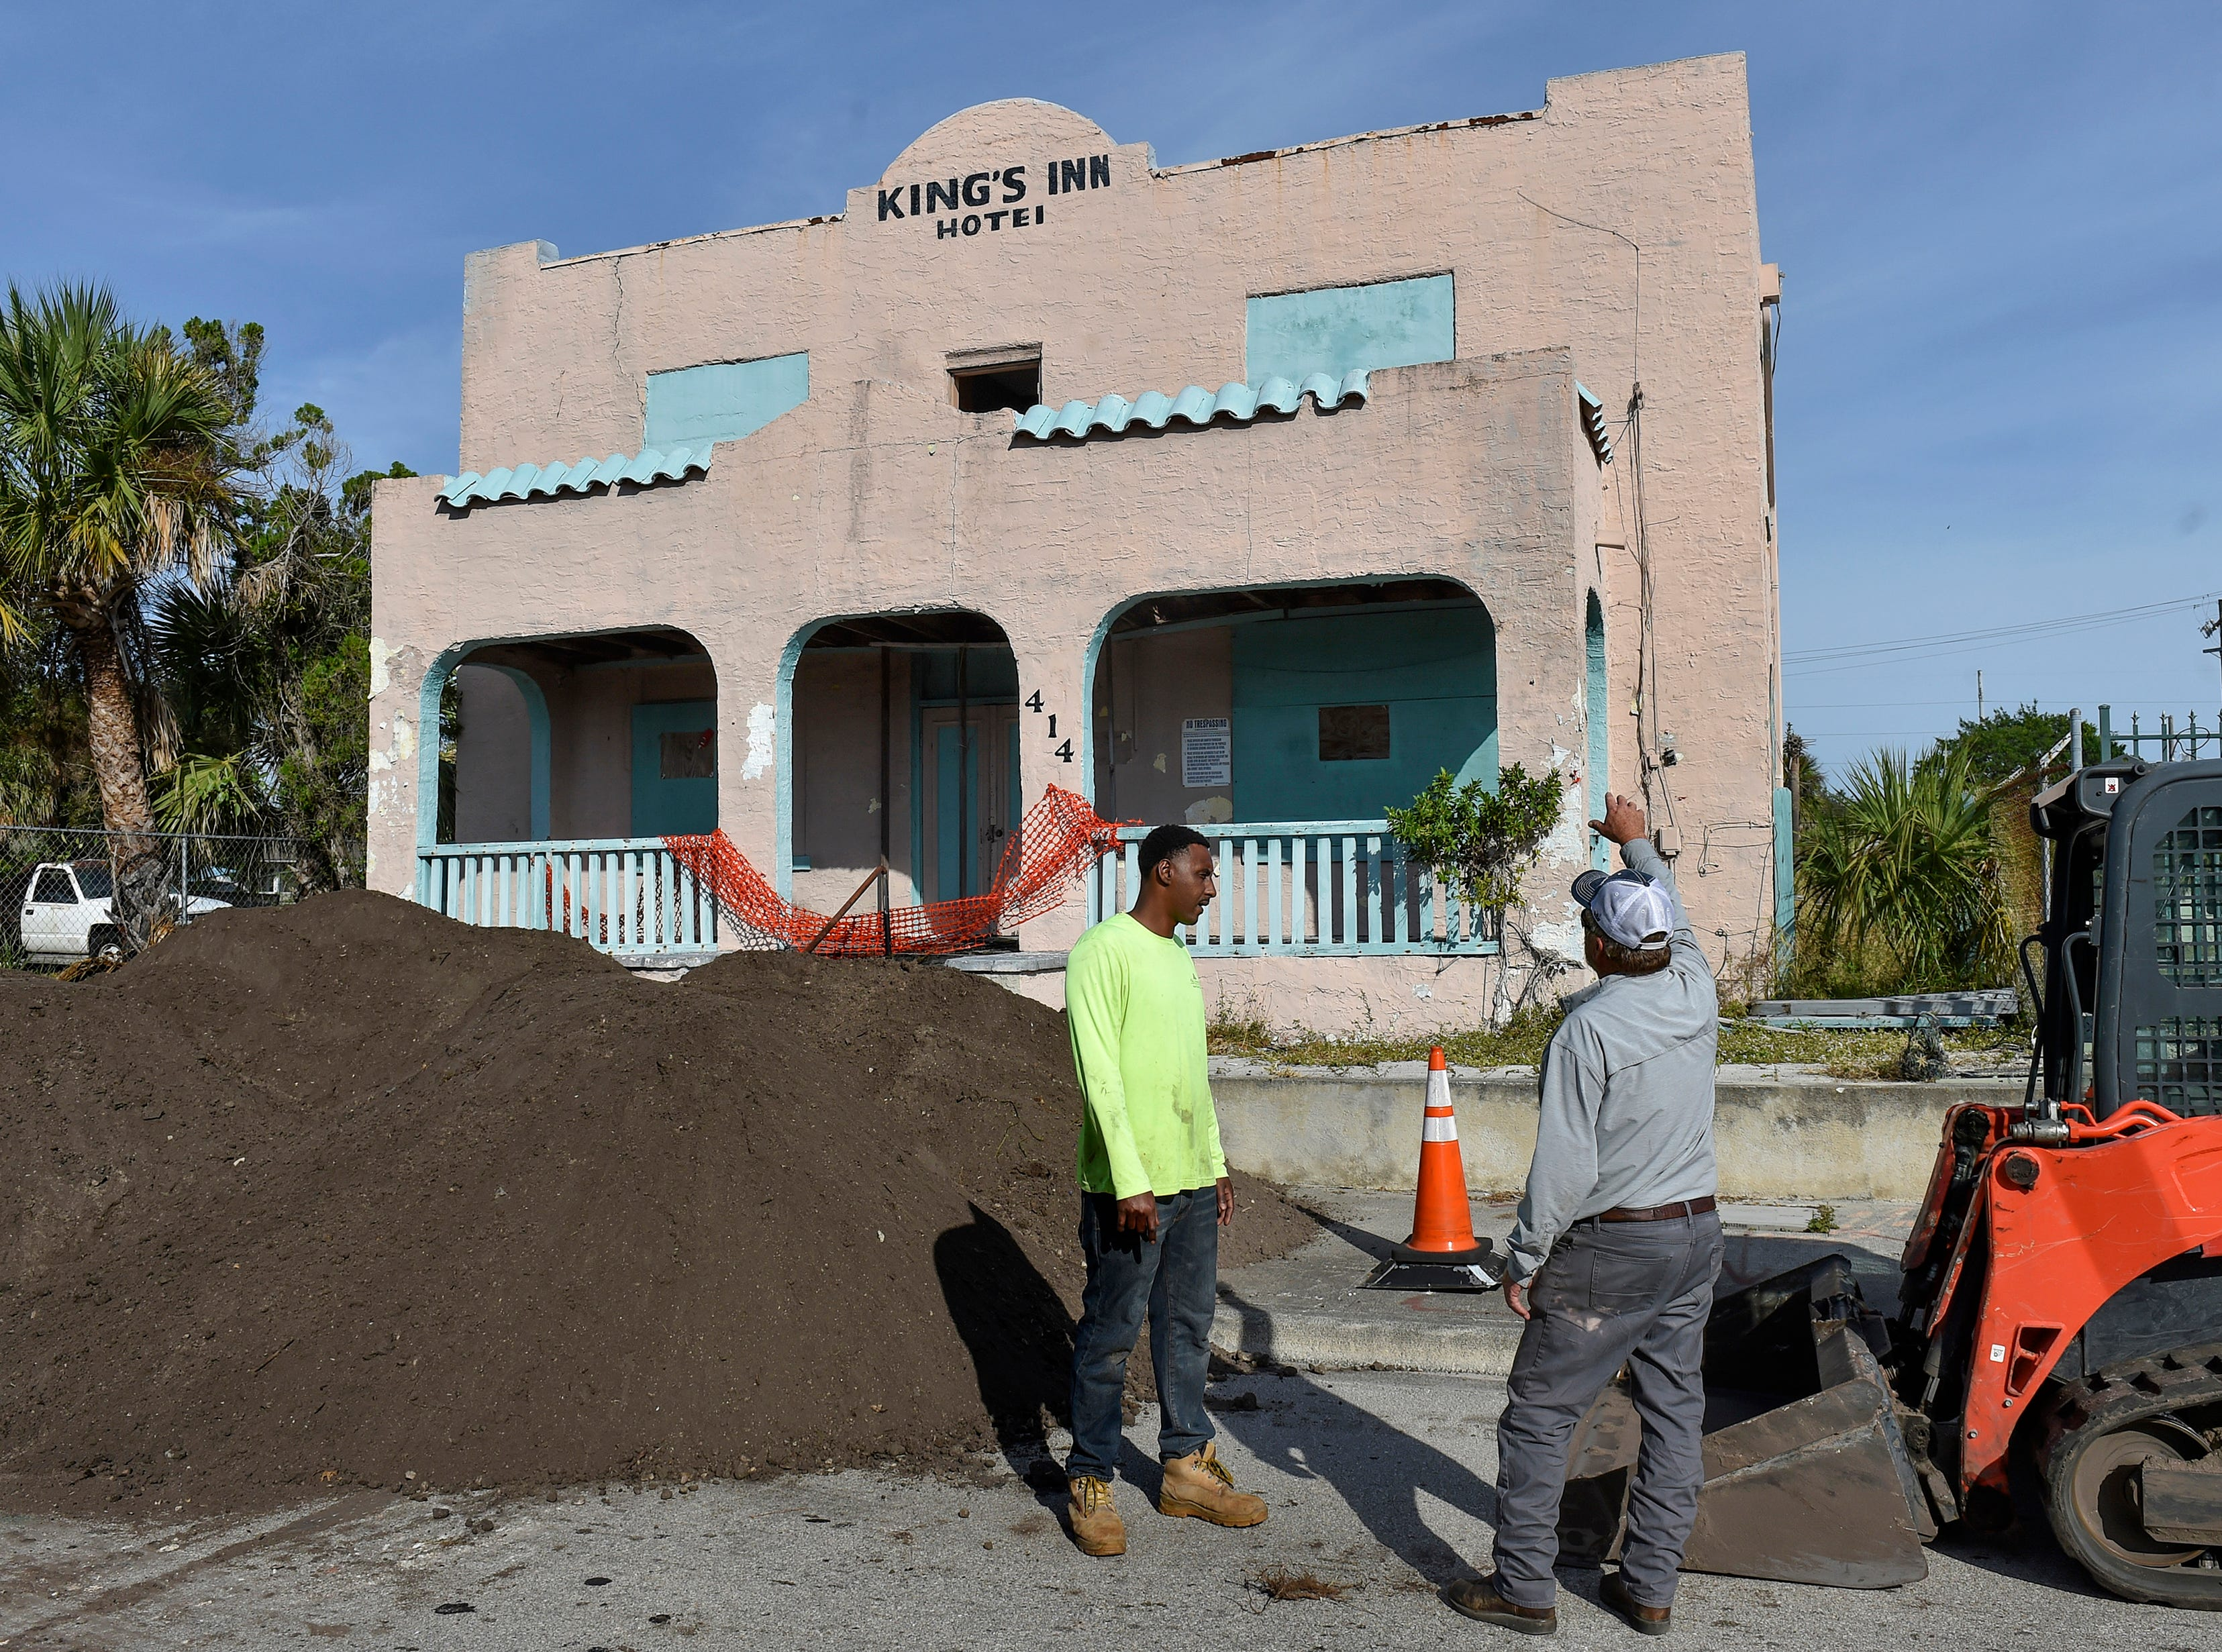 Jerome Mims (left), of A & L Remediation Services, and Mike Fidler, of Samsula Demolition, both of New Smyrna Beach, prepare for the demolition of the old King's Inn building at 414 Avenue D on Monday, Nov. 26, 2018, in Fort Pierce. The King's Inn, a 5,624 square foot hotel constructed in 1926, has been vacant for more than a decade, and is under deconstruction through Monday, Dec. 3, closing Avenue D from U.S. 1 to North 7th Street.